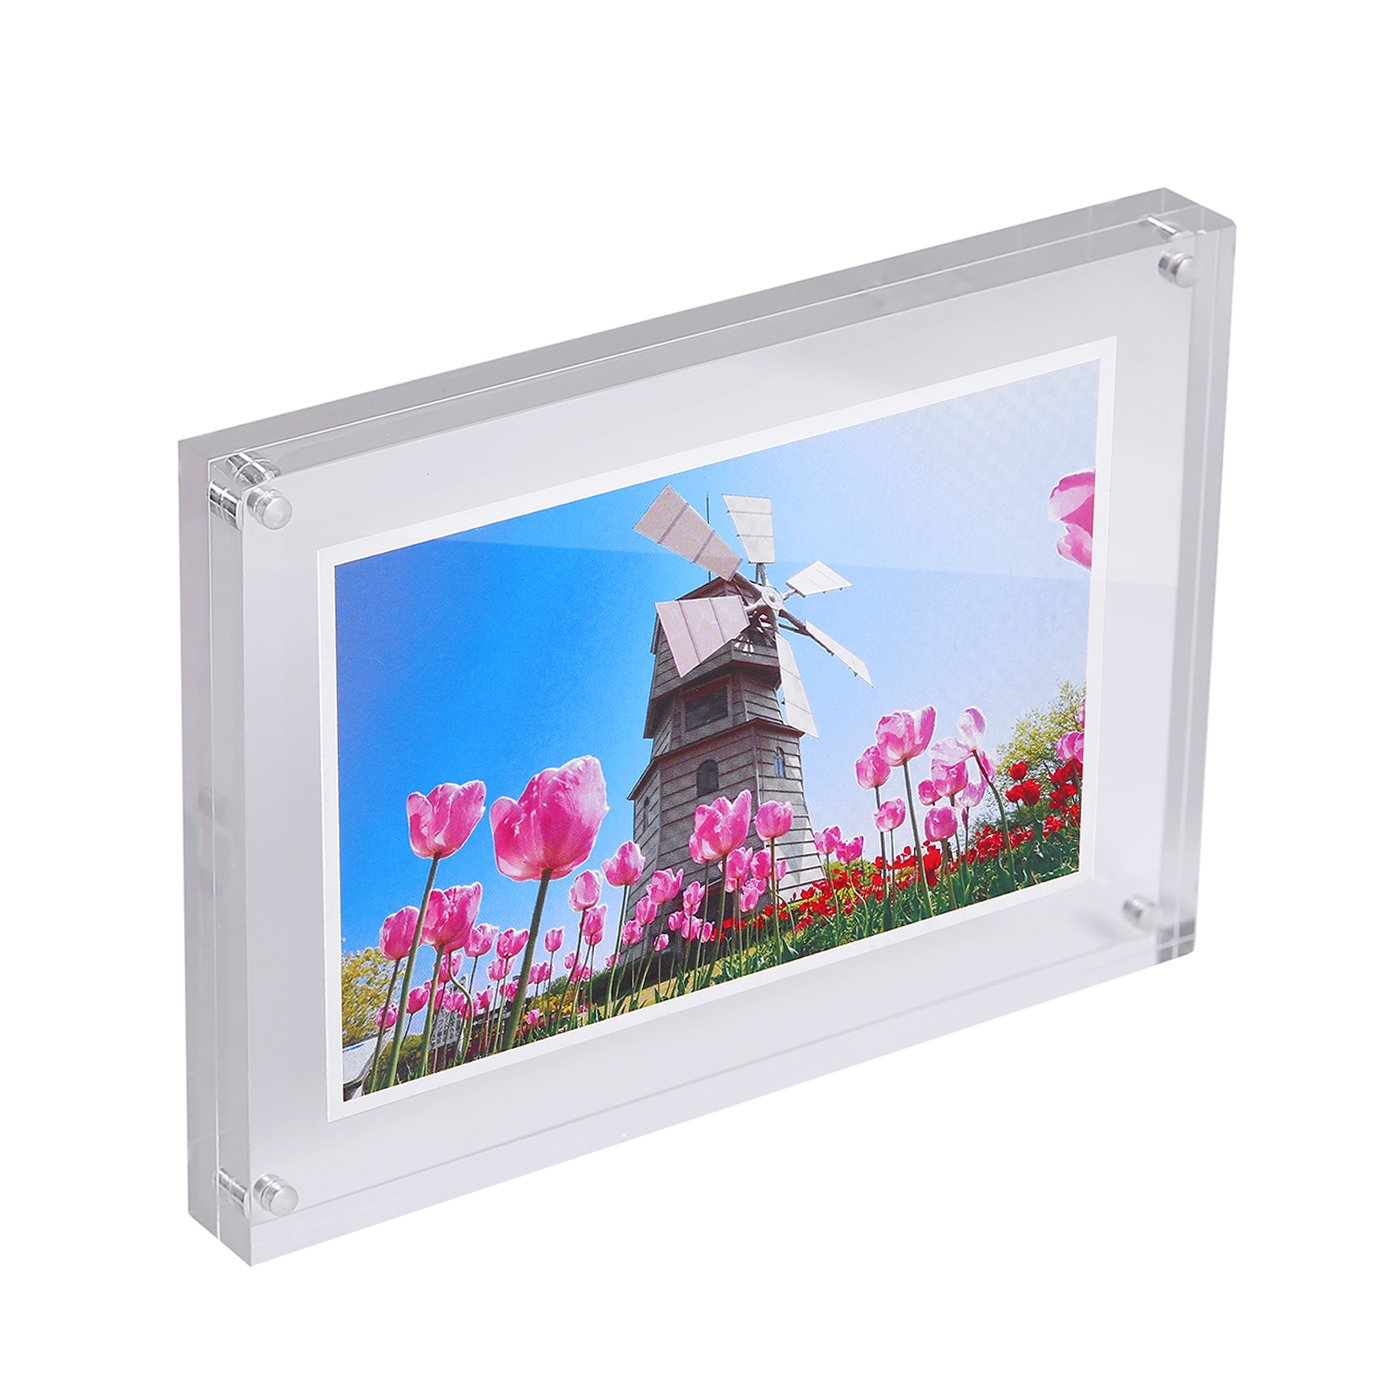 HDE Acrylic Photo Frame 5x7 Magnetic Double Sided Clear Photo Frame 15mm Thickness Free Standing Desktop Picture Display (2 Pack)